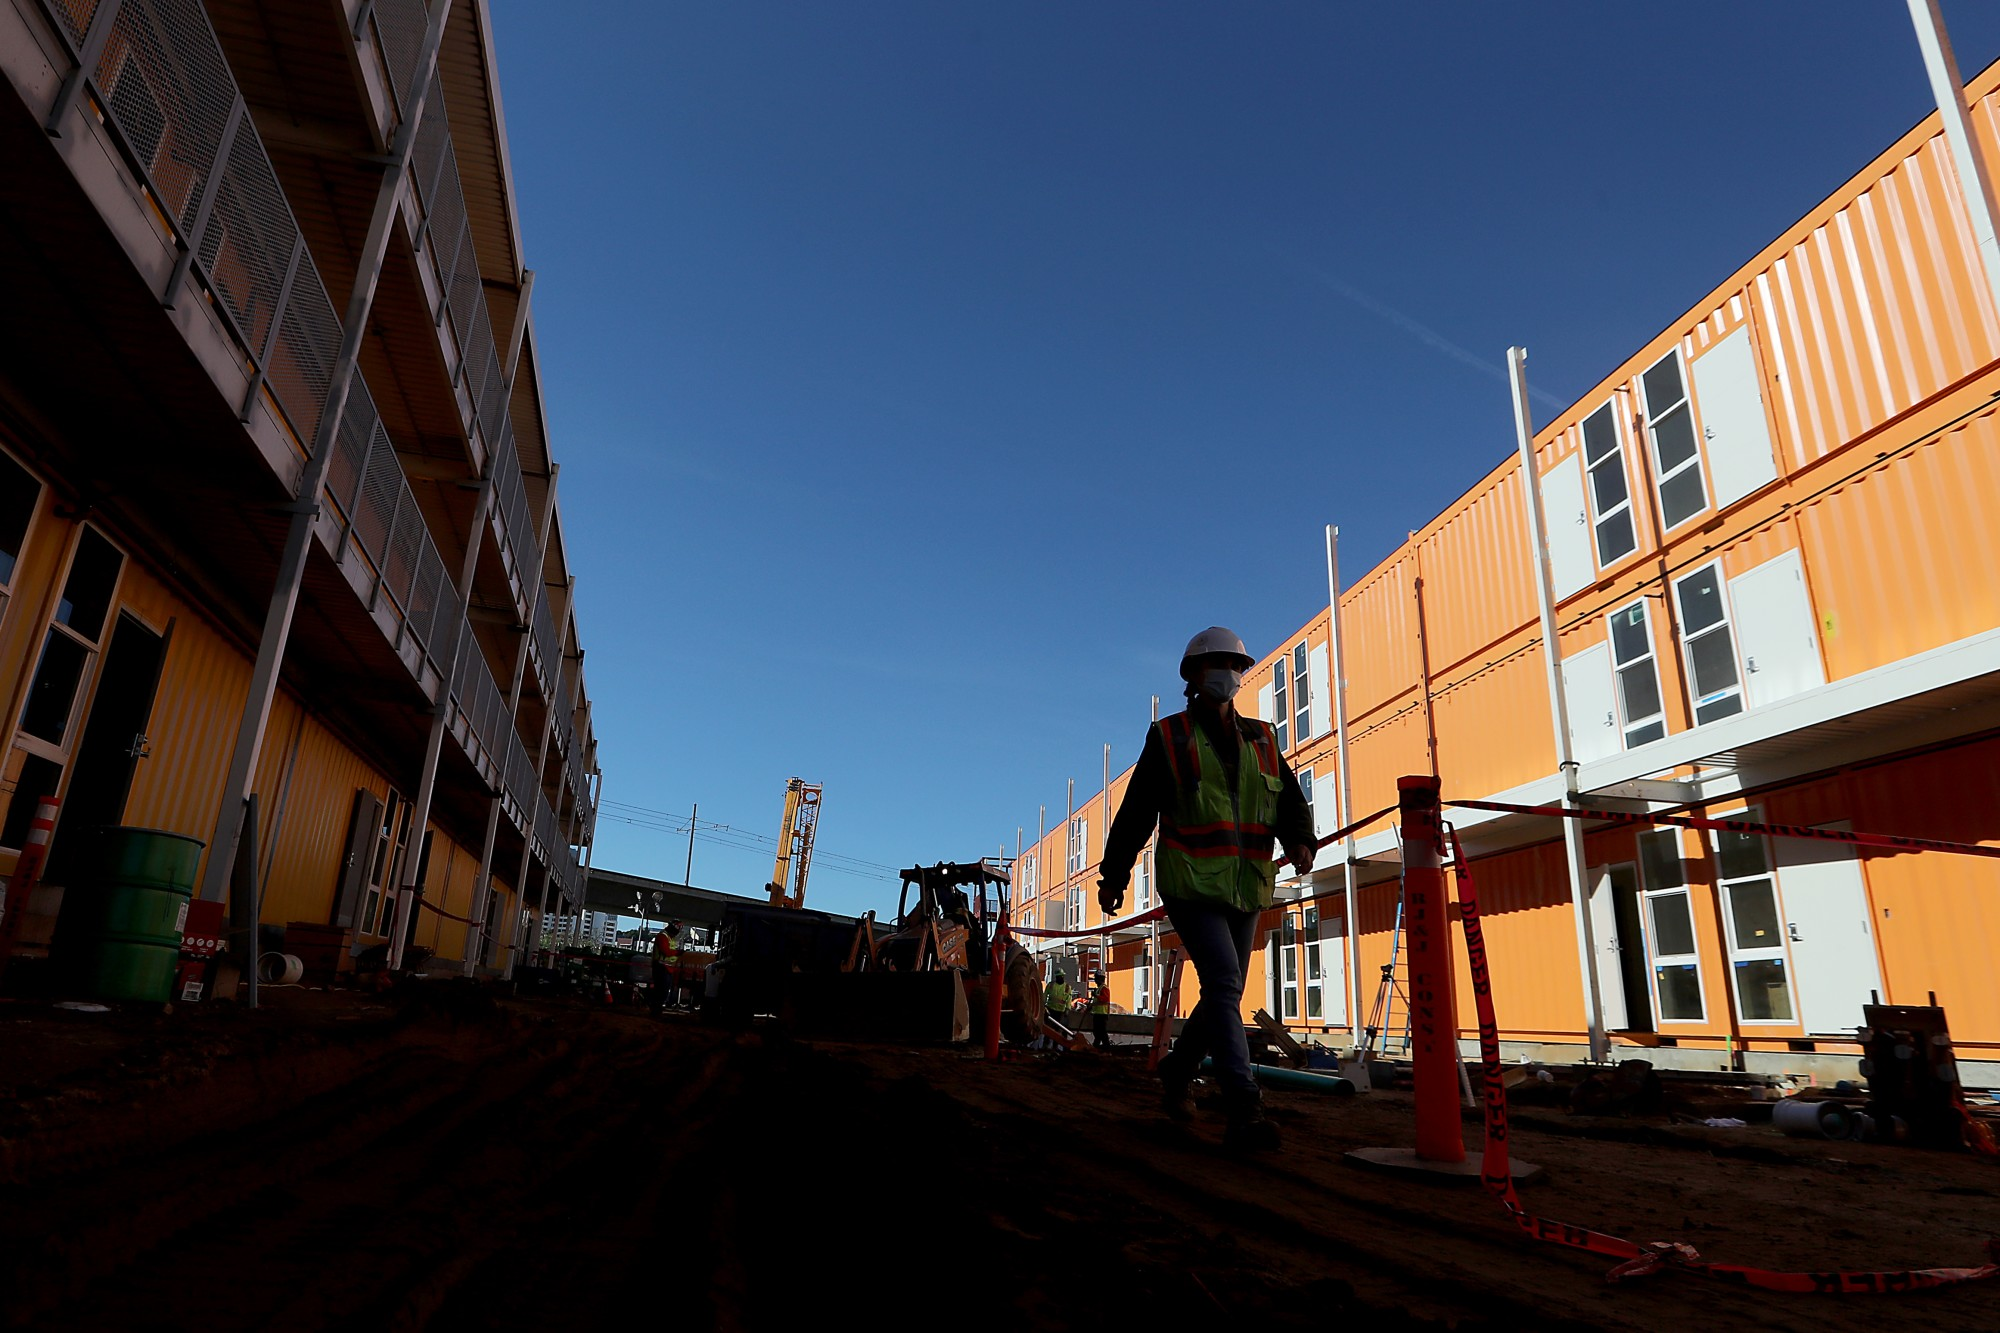 L.A. County contractors are rushing to complete a 232-unit Vignes Street homeless housing development in downtown Los Angeles. Authorities said the project will be a milestone for speed and economy. (Luis Sinco / Los Angeles Times)